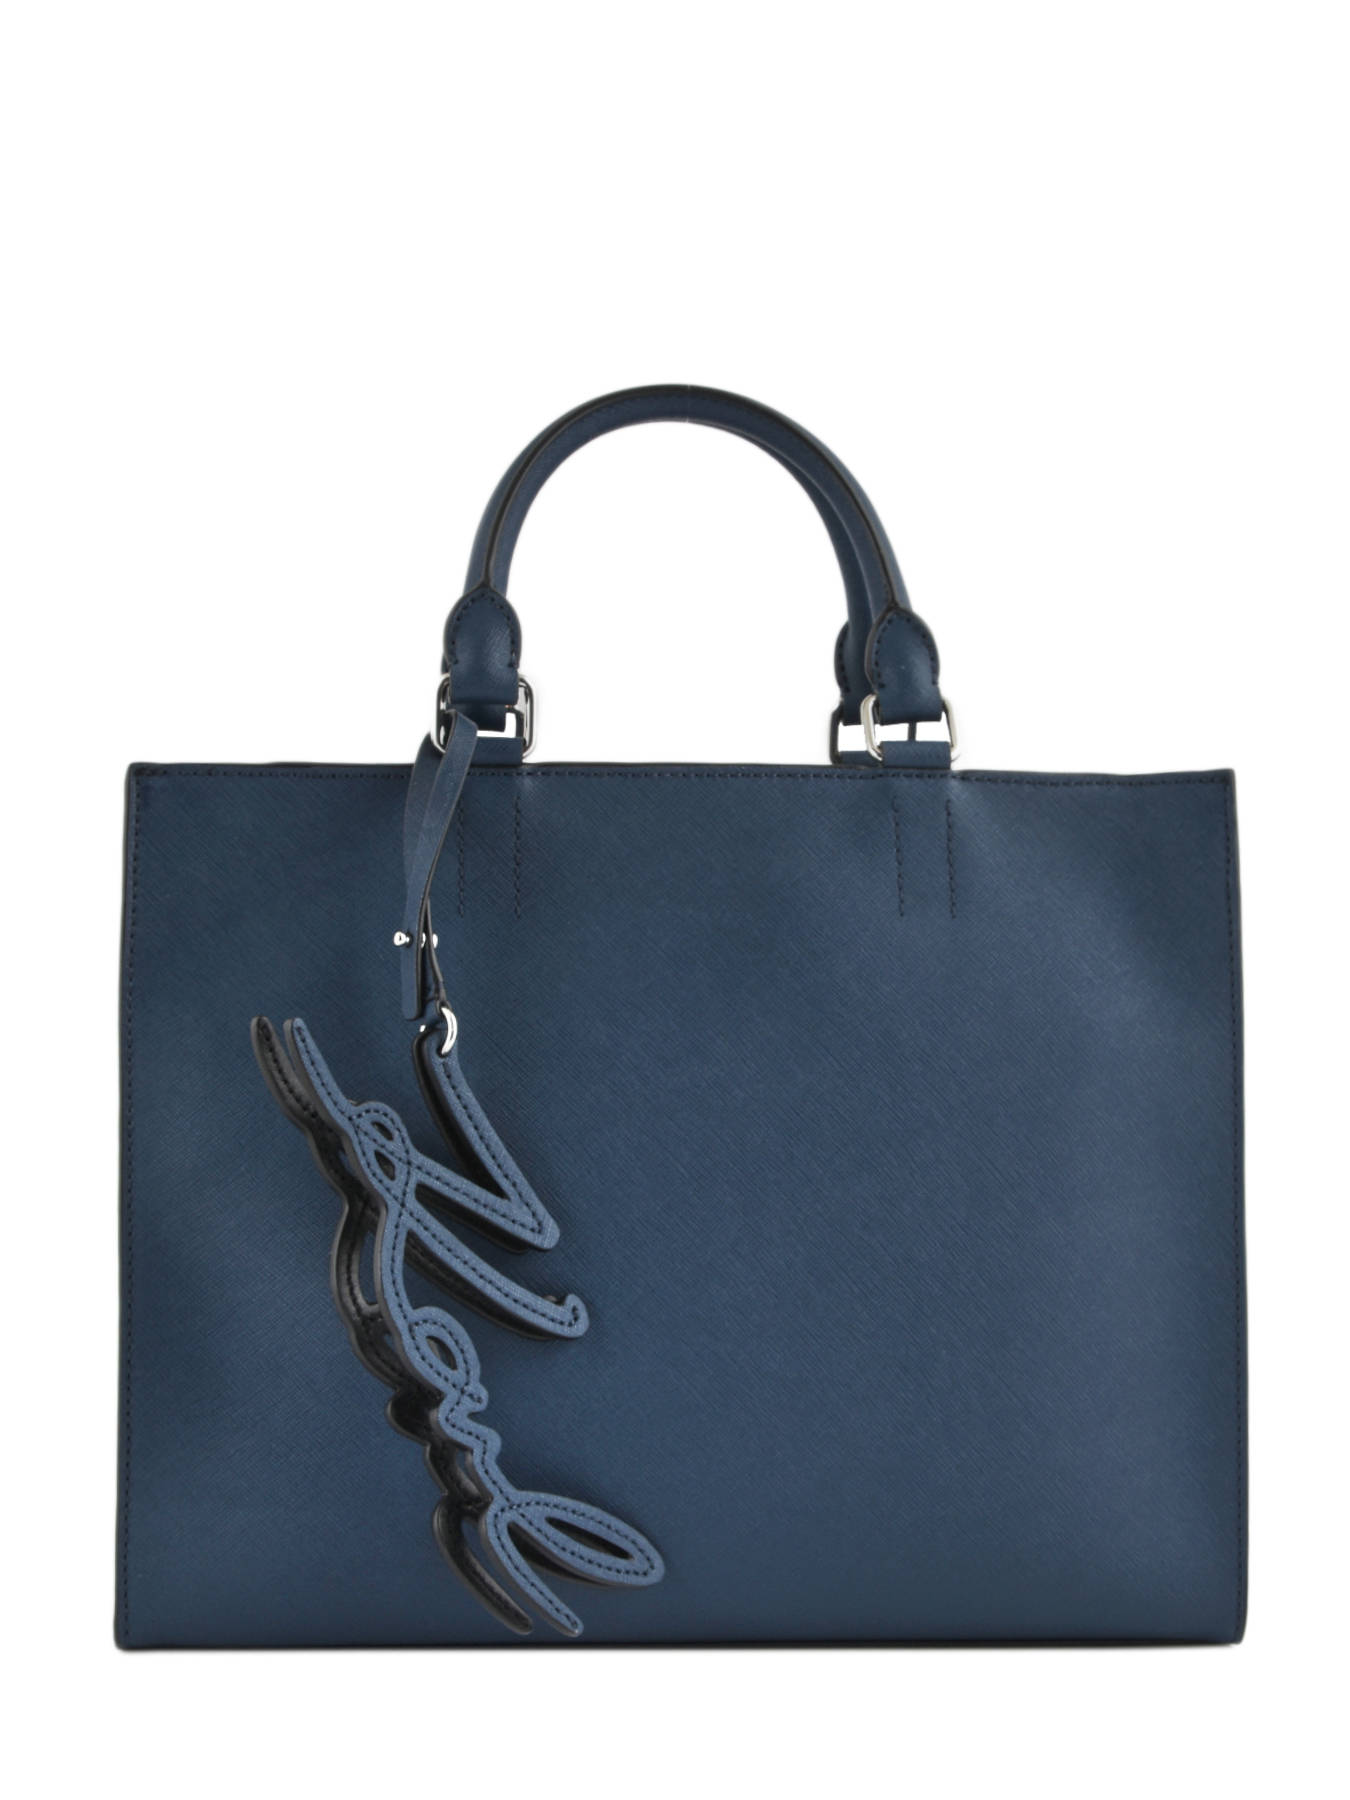 Ping Bag K Signature Essential Leather Karl Lagerfeld Blue 81kw3051